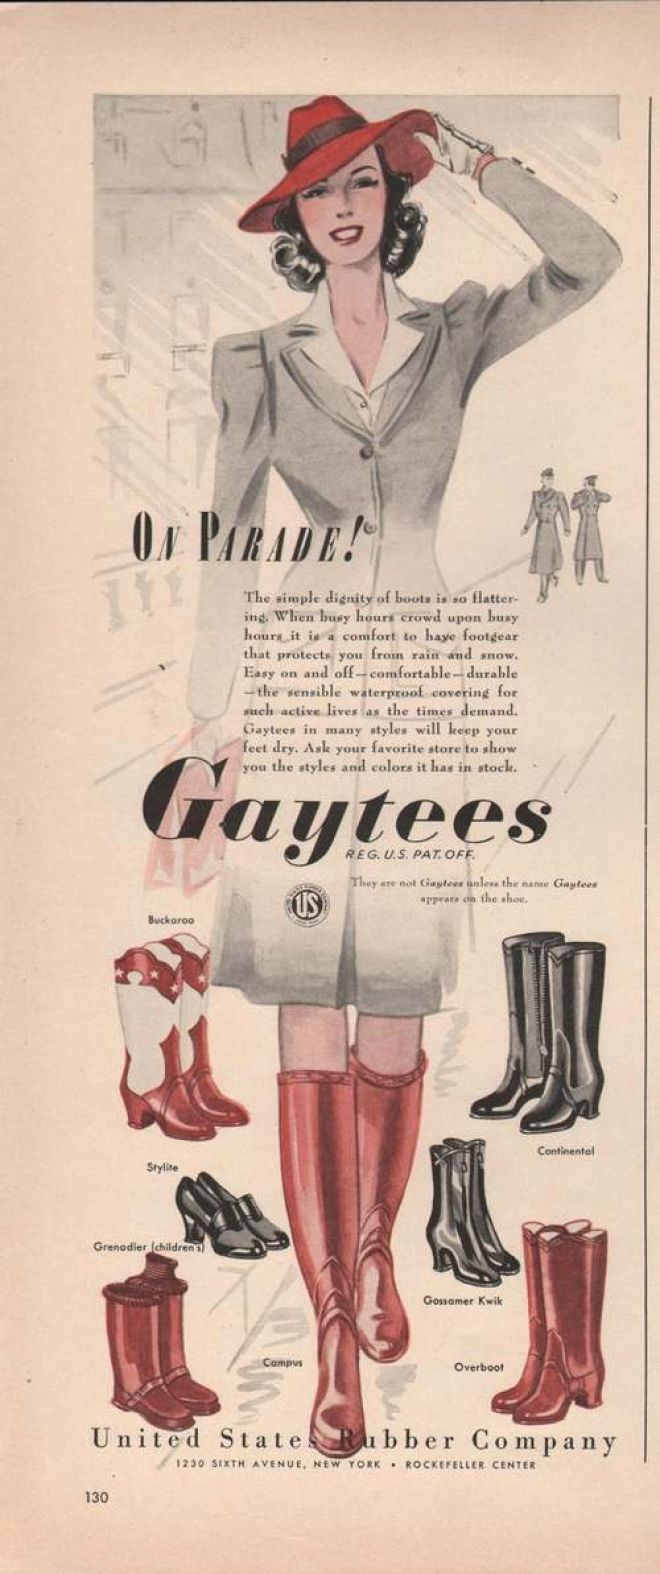 Vintage clothes fashion ads of the 1940s page 22 - On Parade Gaytees Womens Boot Shoes Ad